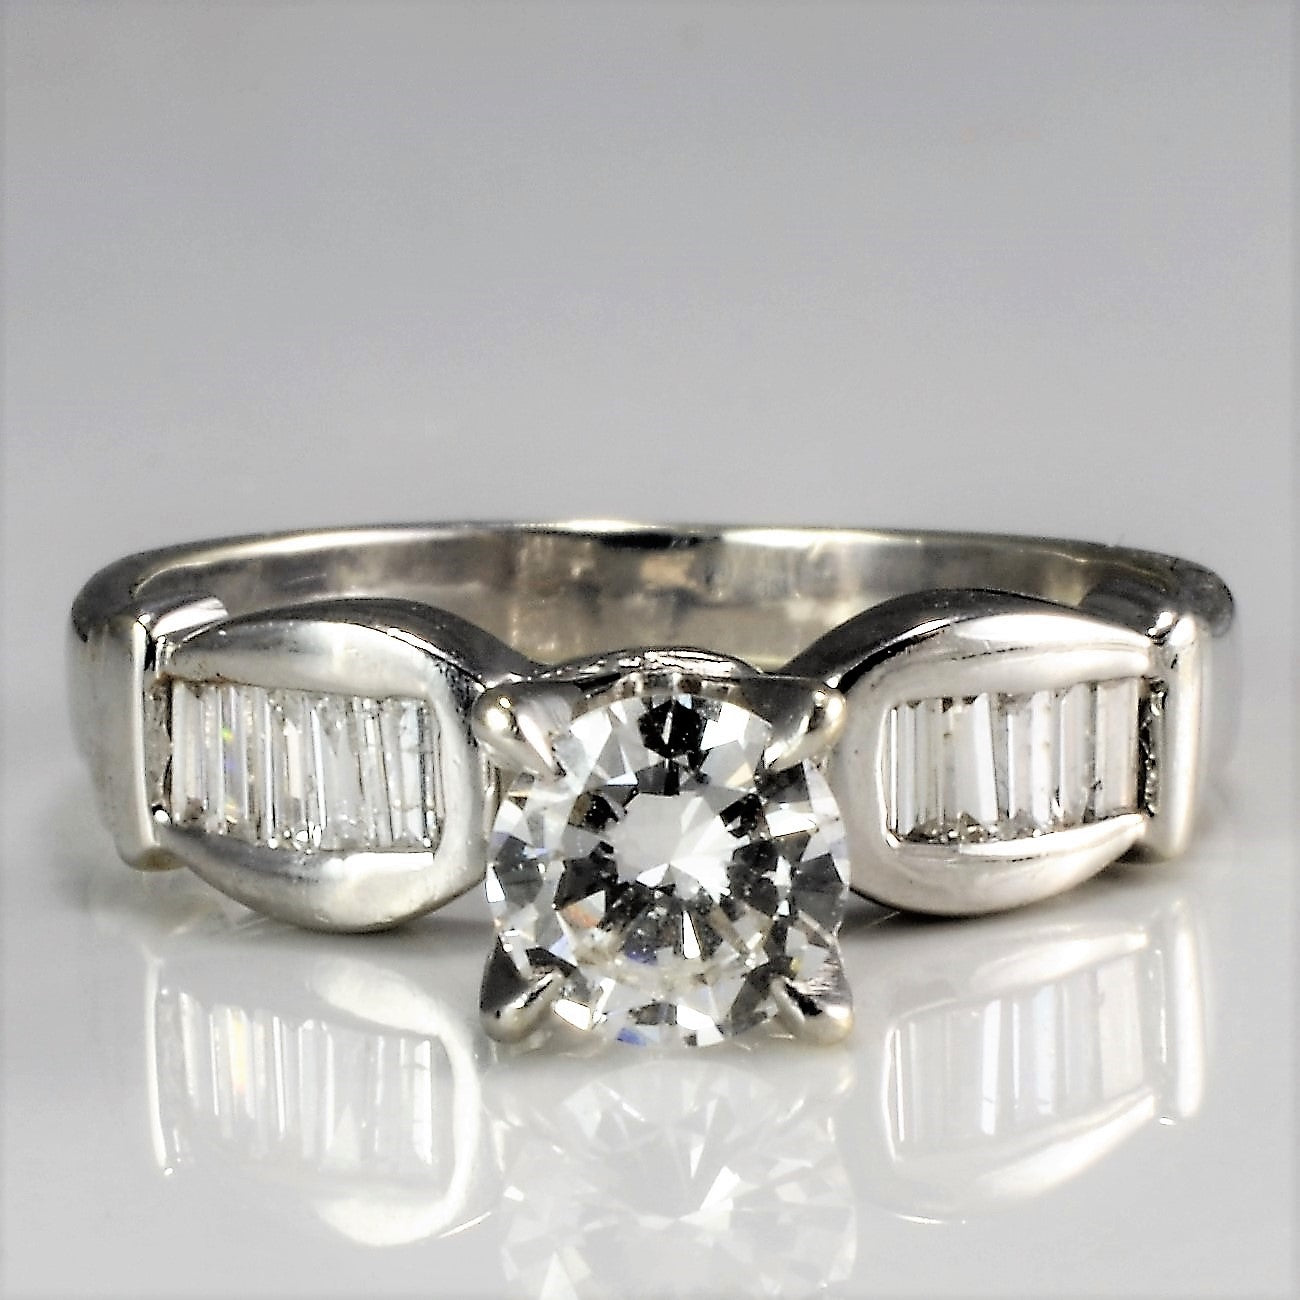 High Prong Set Solitaire Diamond & Accents Engagement Ring | 0.70 ctw, SZ 6 |